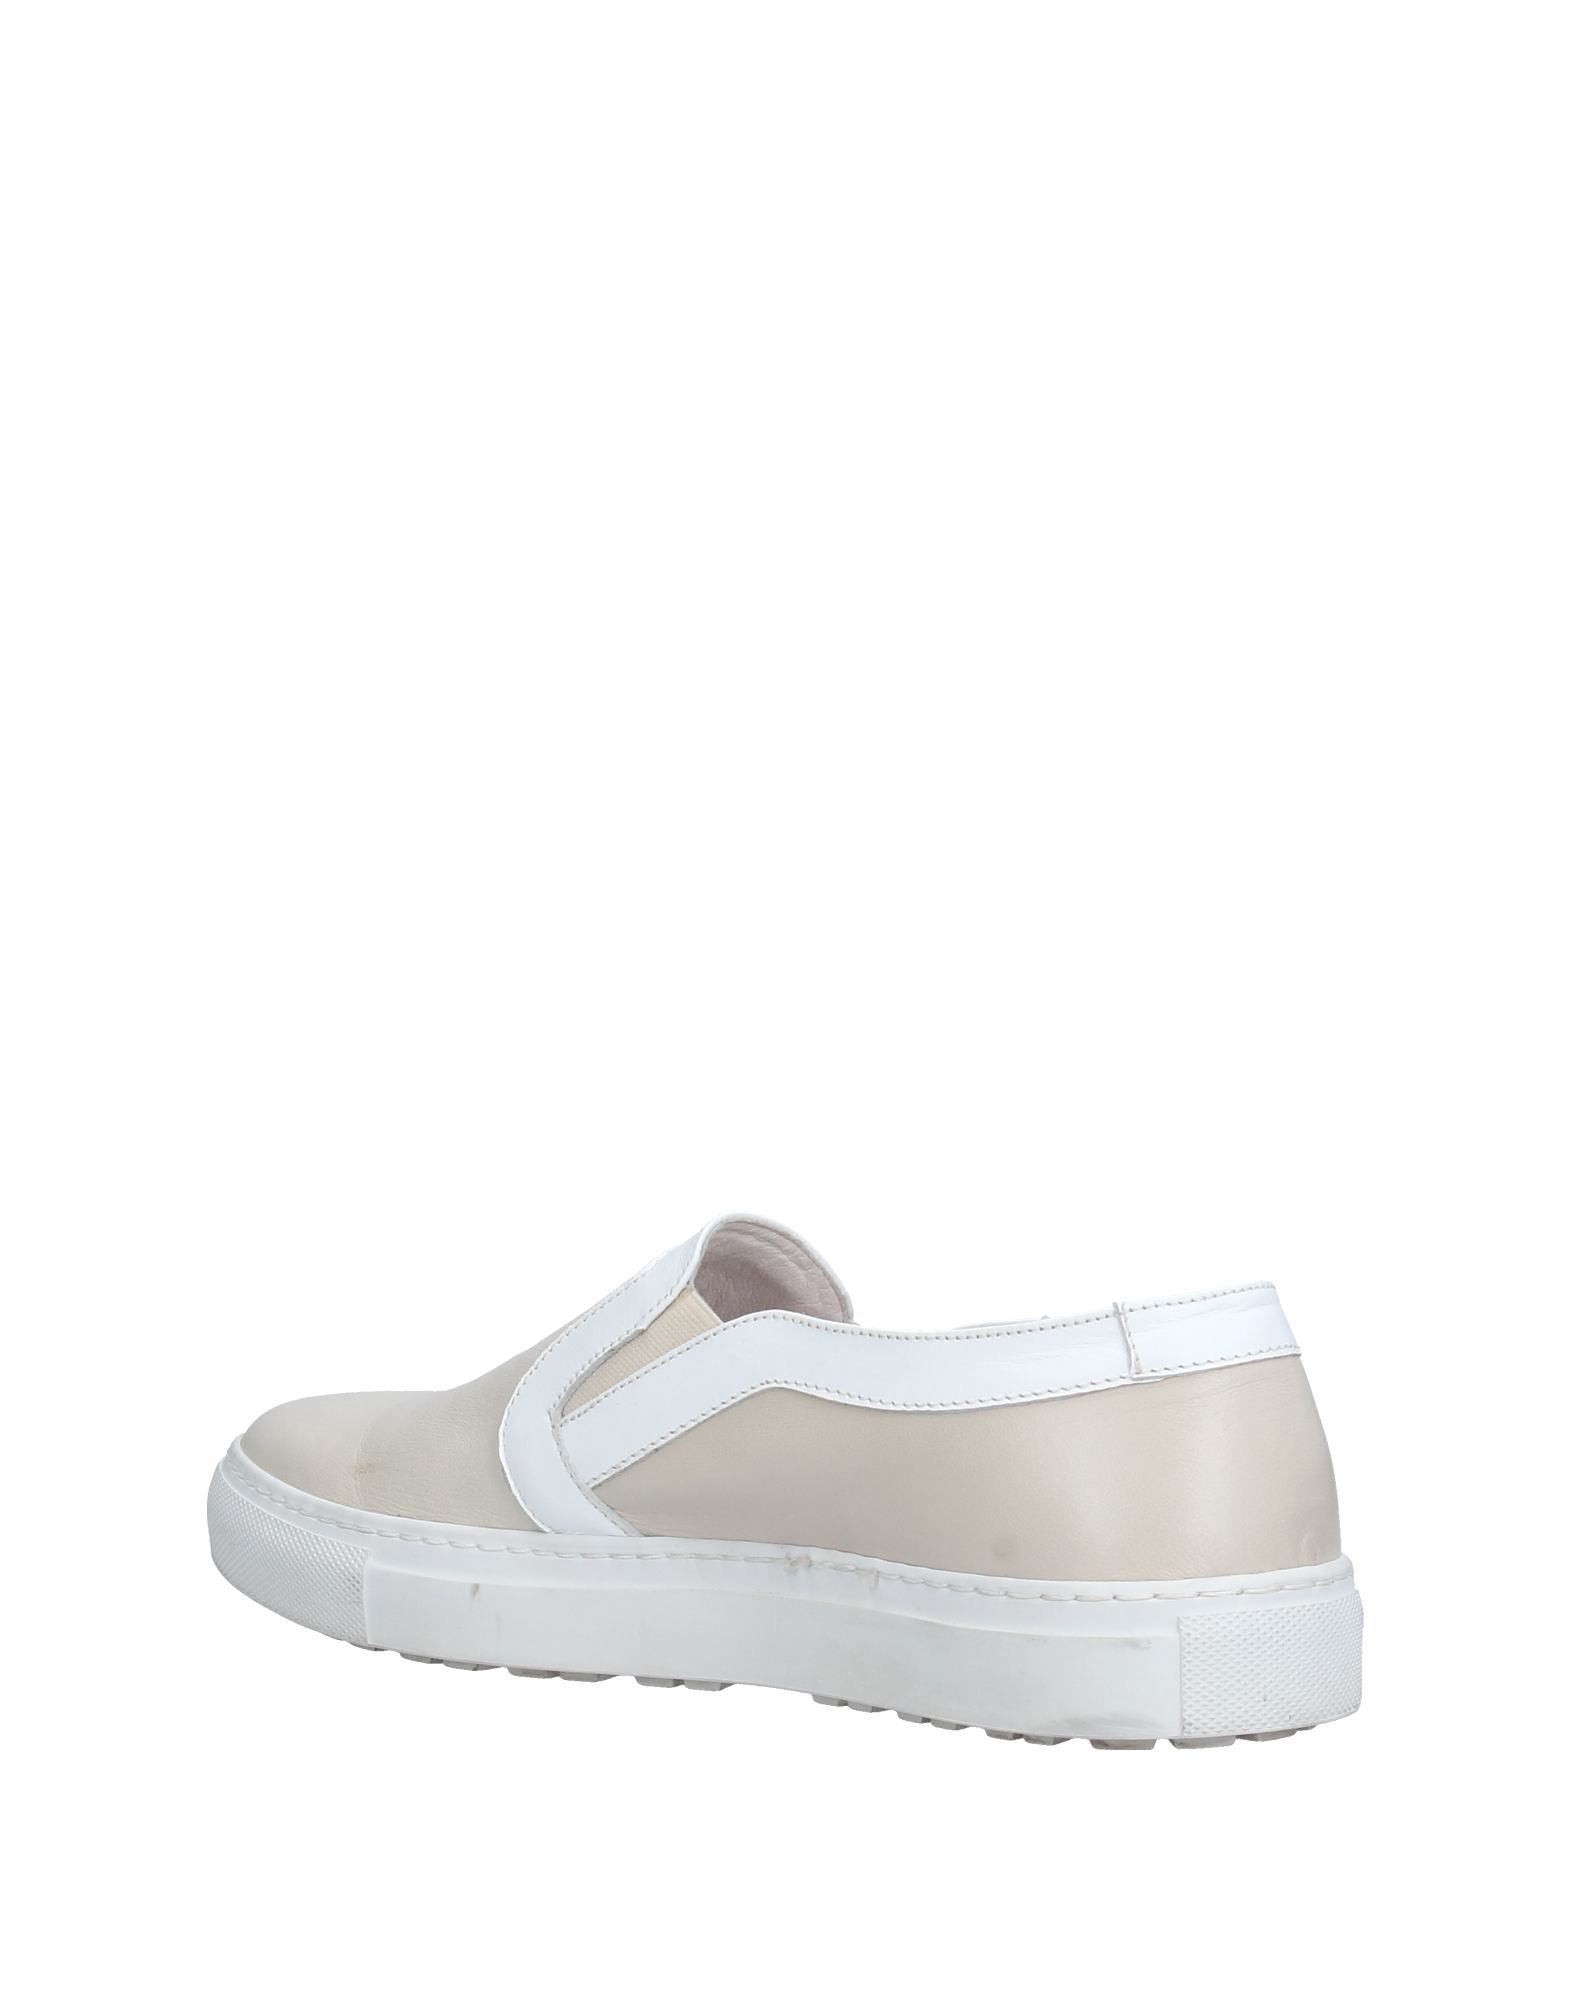 Sneakers Regard Femme - Sneakers Regard sur